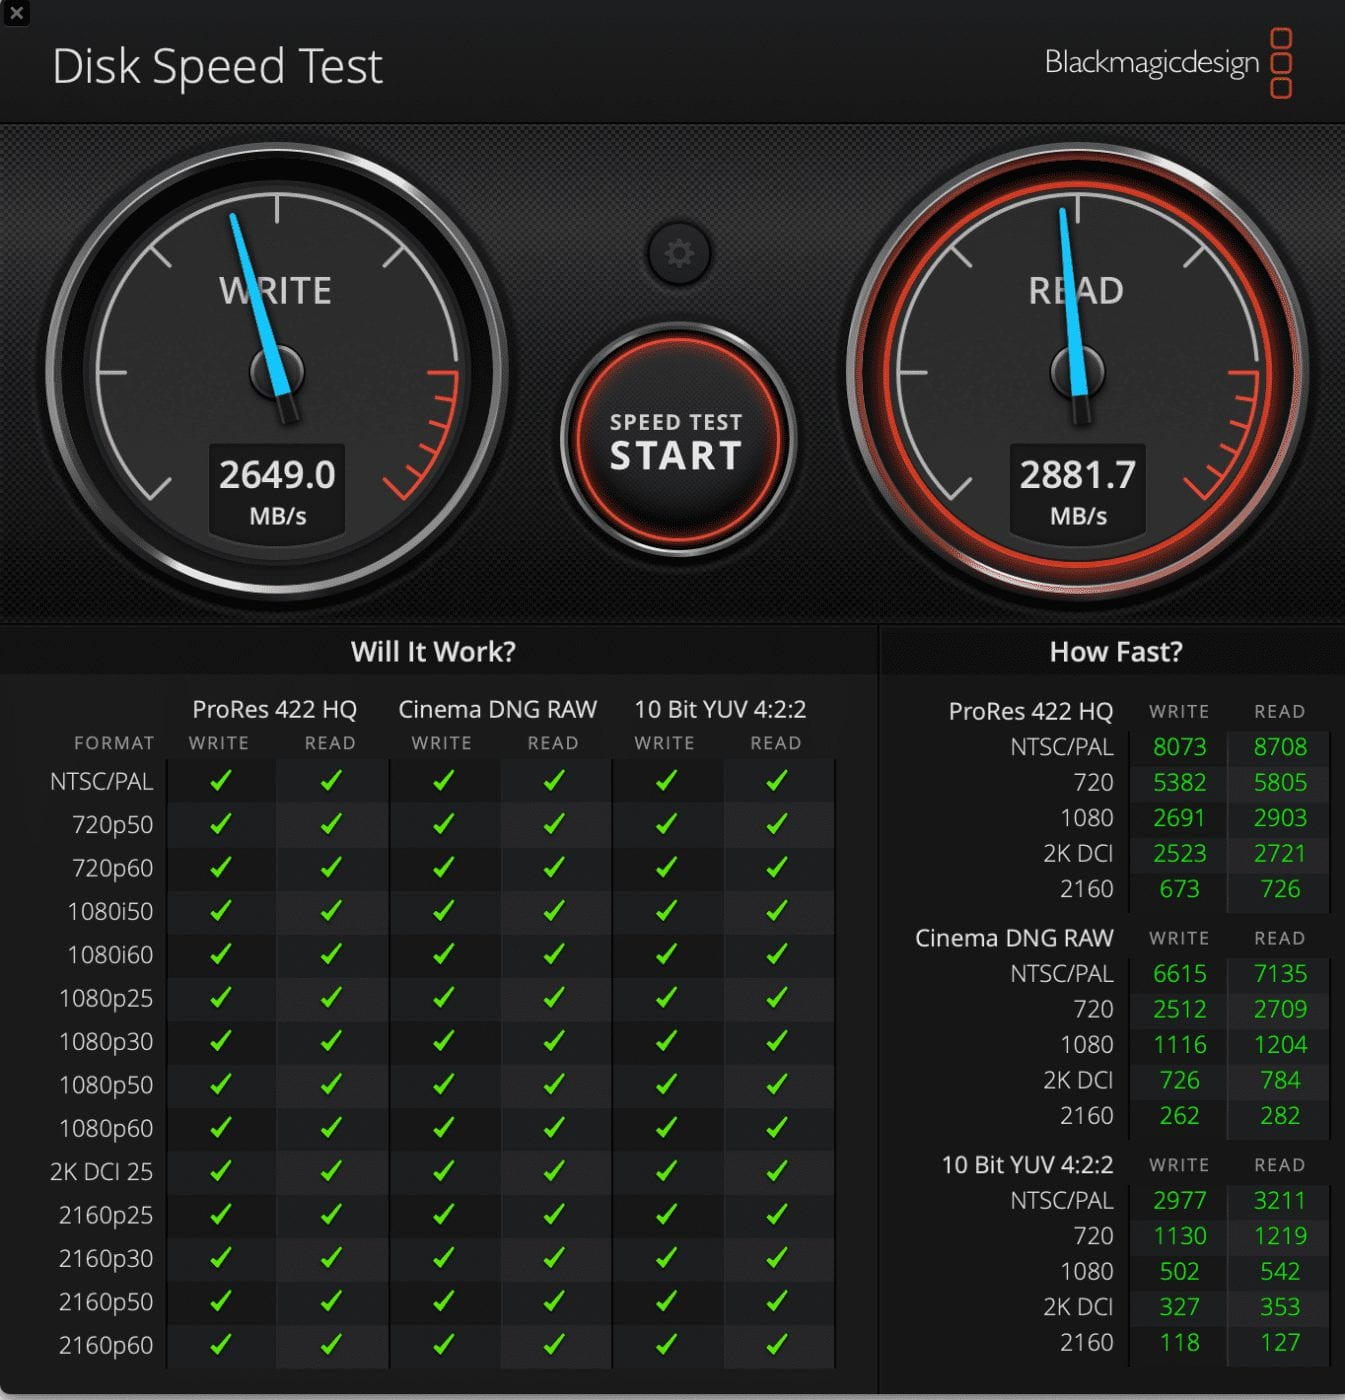 Disk Speed Test results: 13-inch MacBook Air / M1, 16GB RAM, 512TB SSD